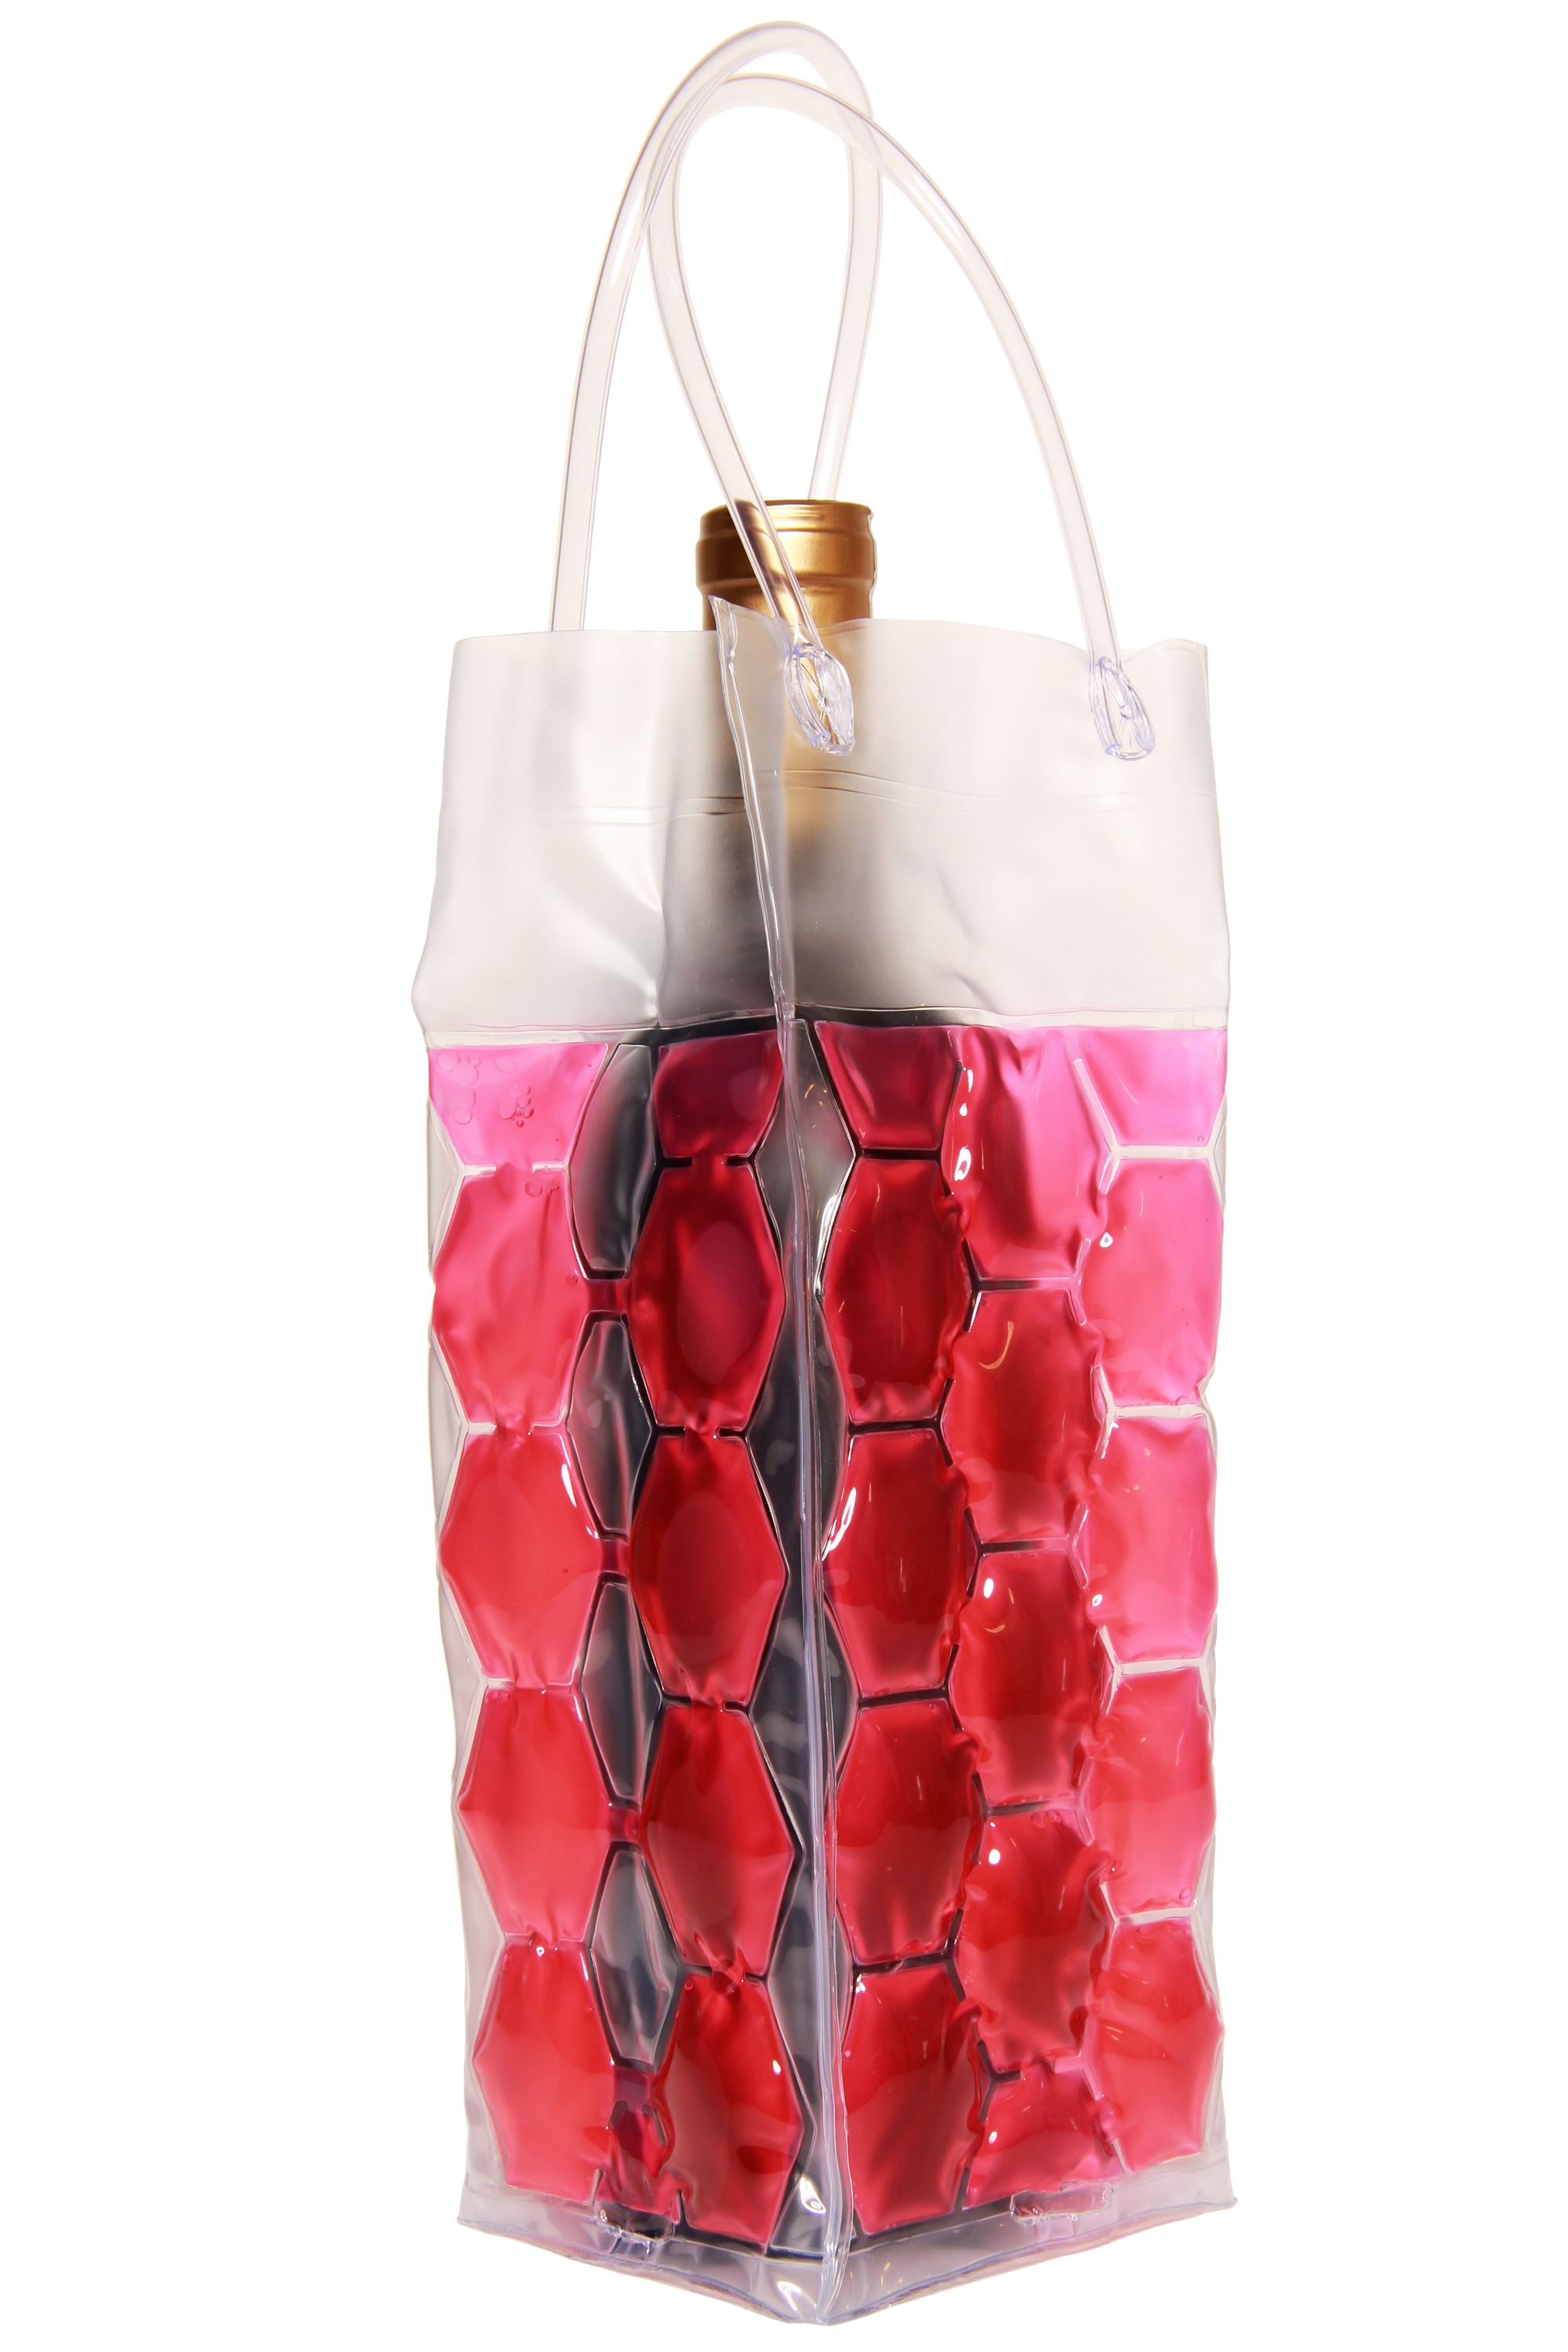 4 Sided Cool Sack Pink